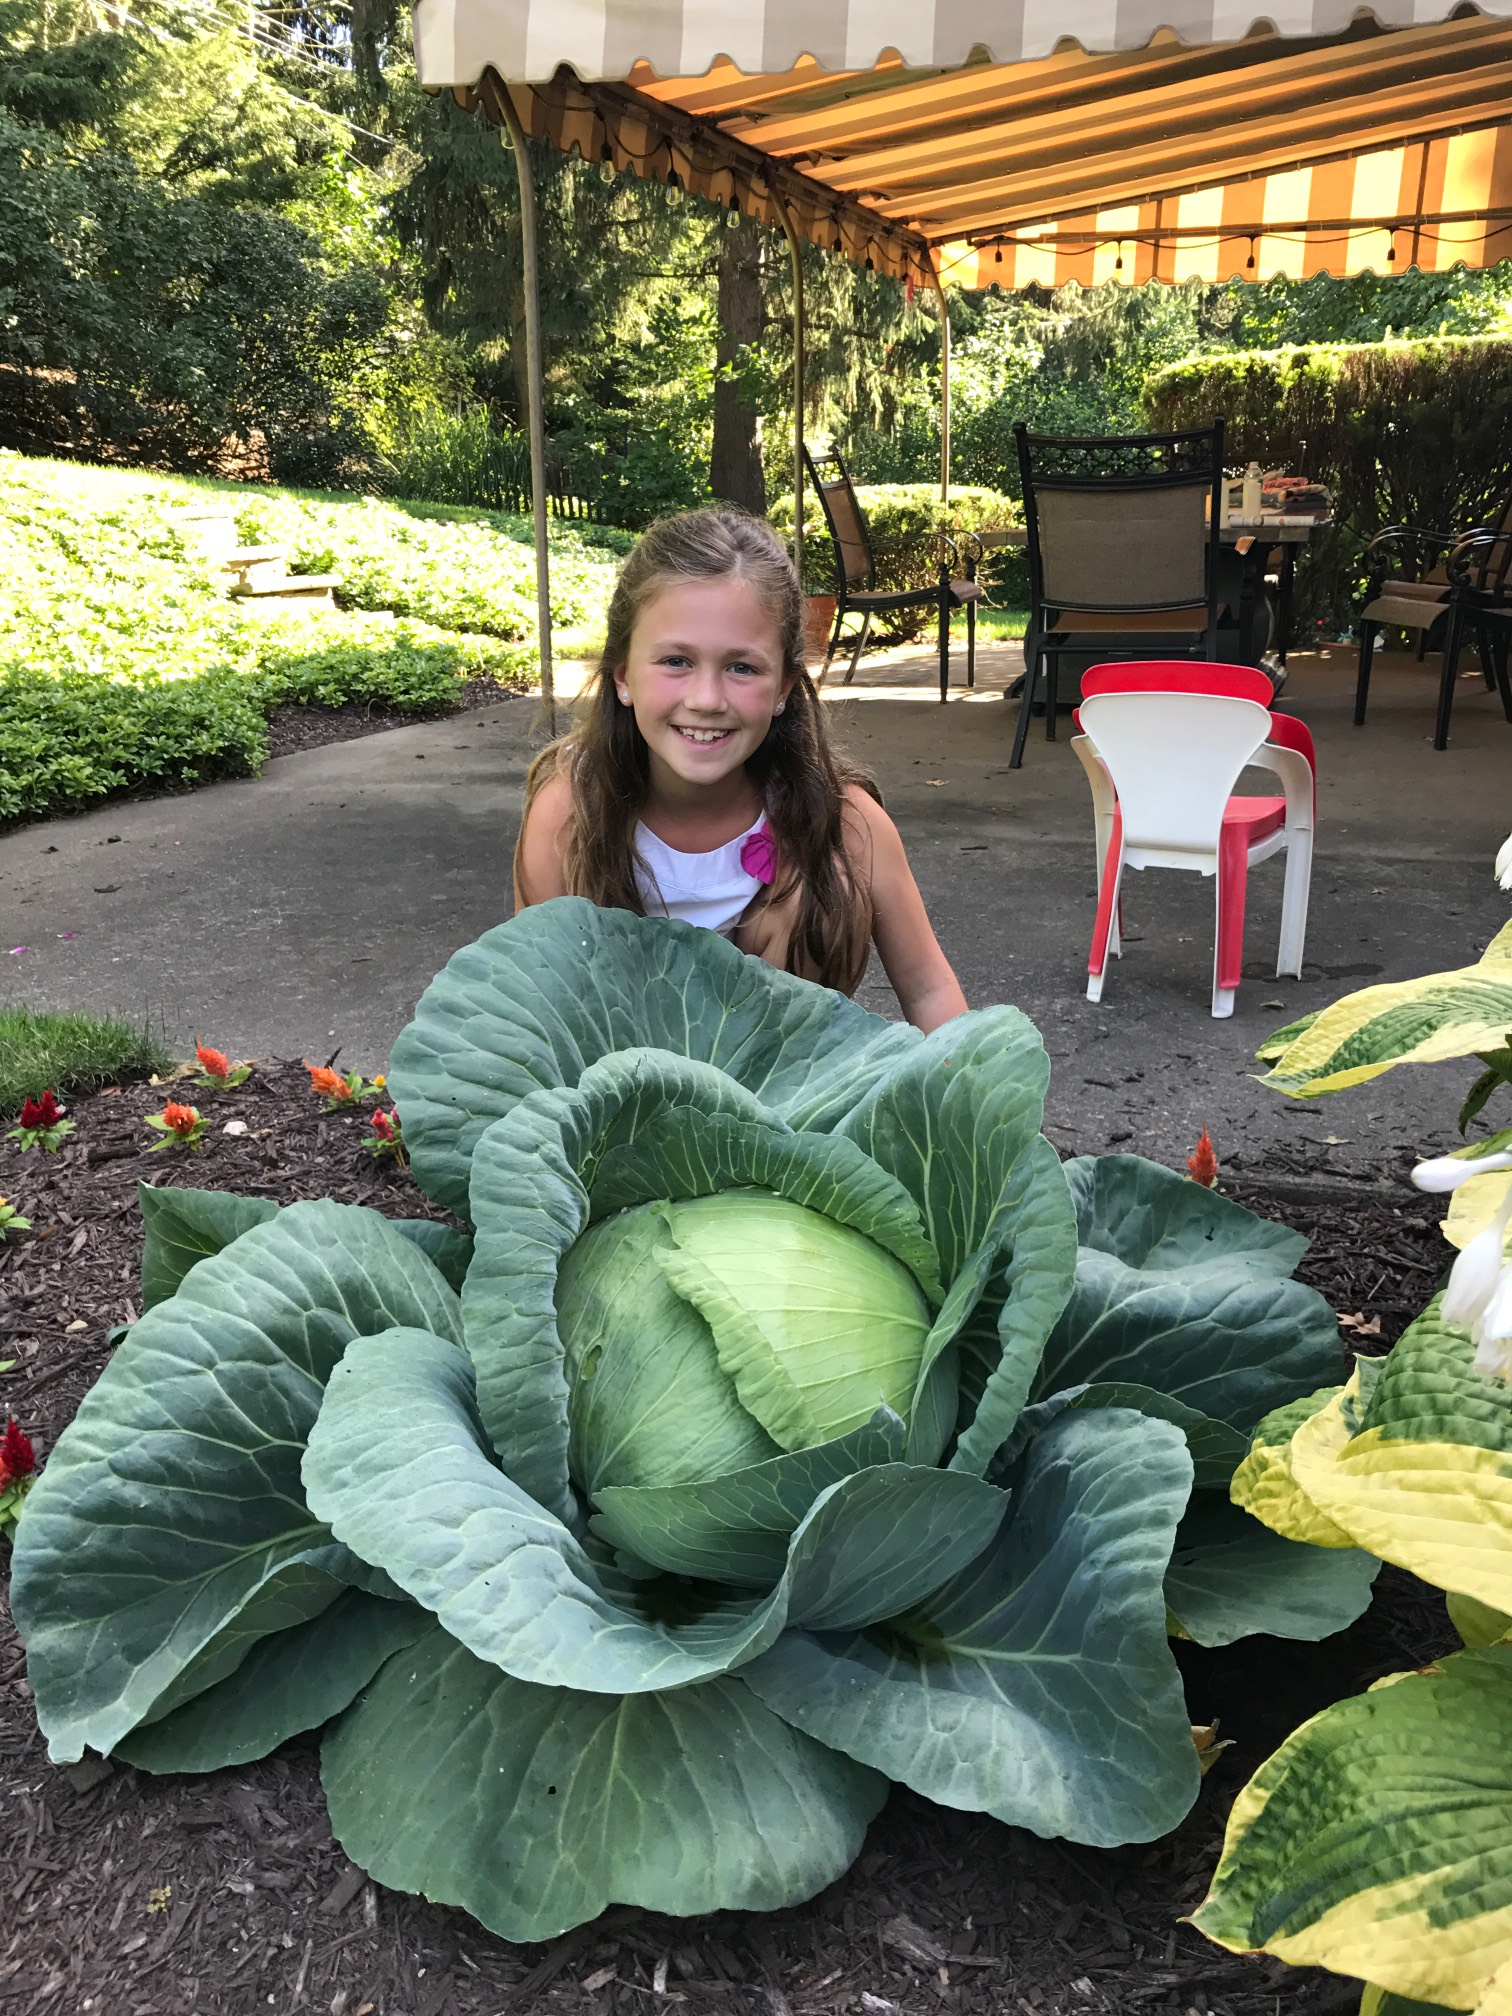 Bonnie Plant Cabbage Contest Winner